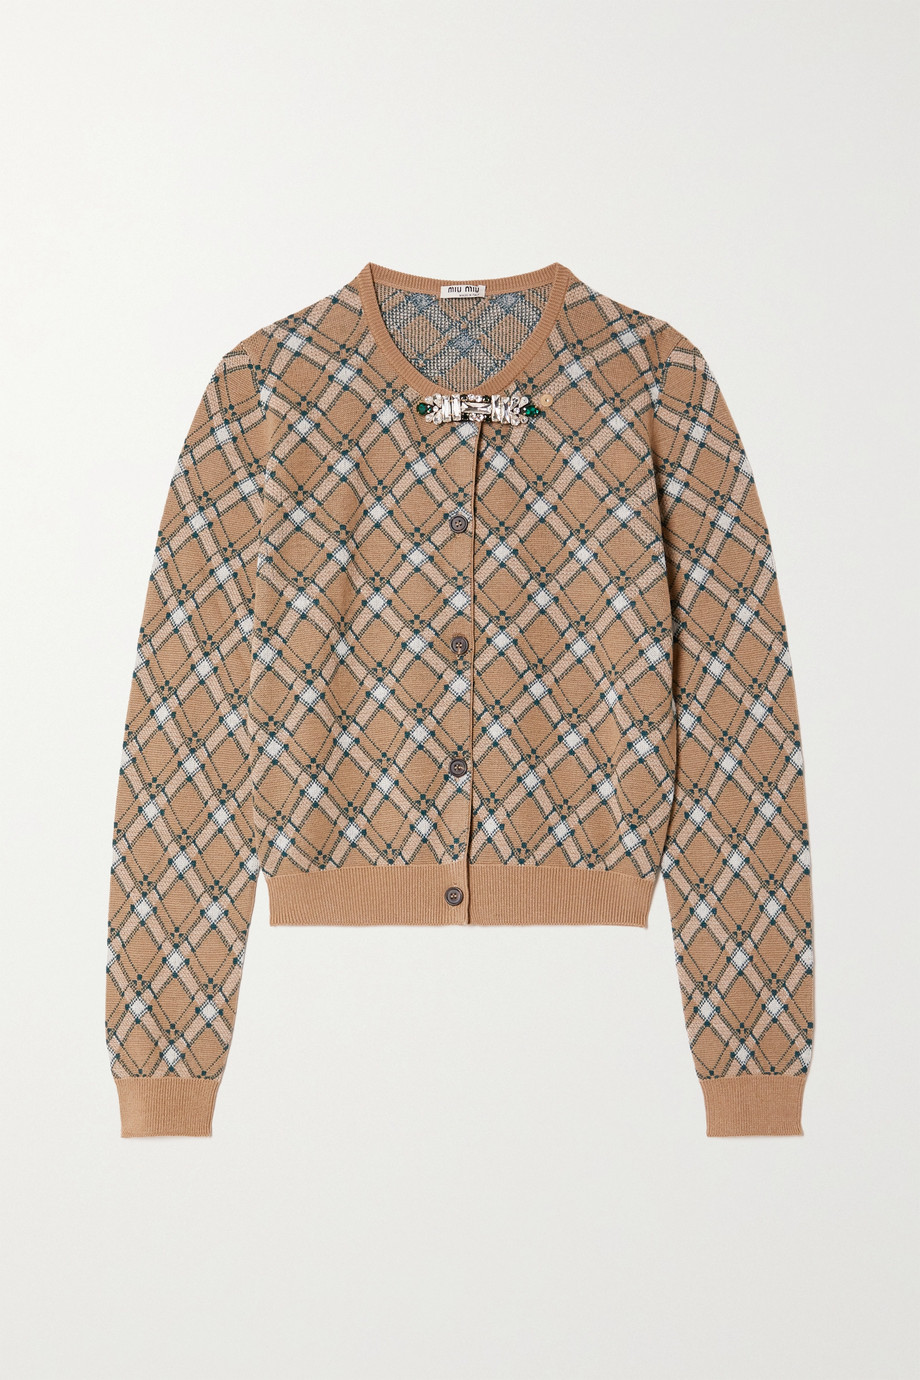 Miu Miu Crystal-embellished checked wool cardigan